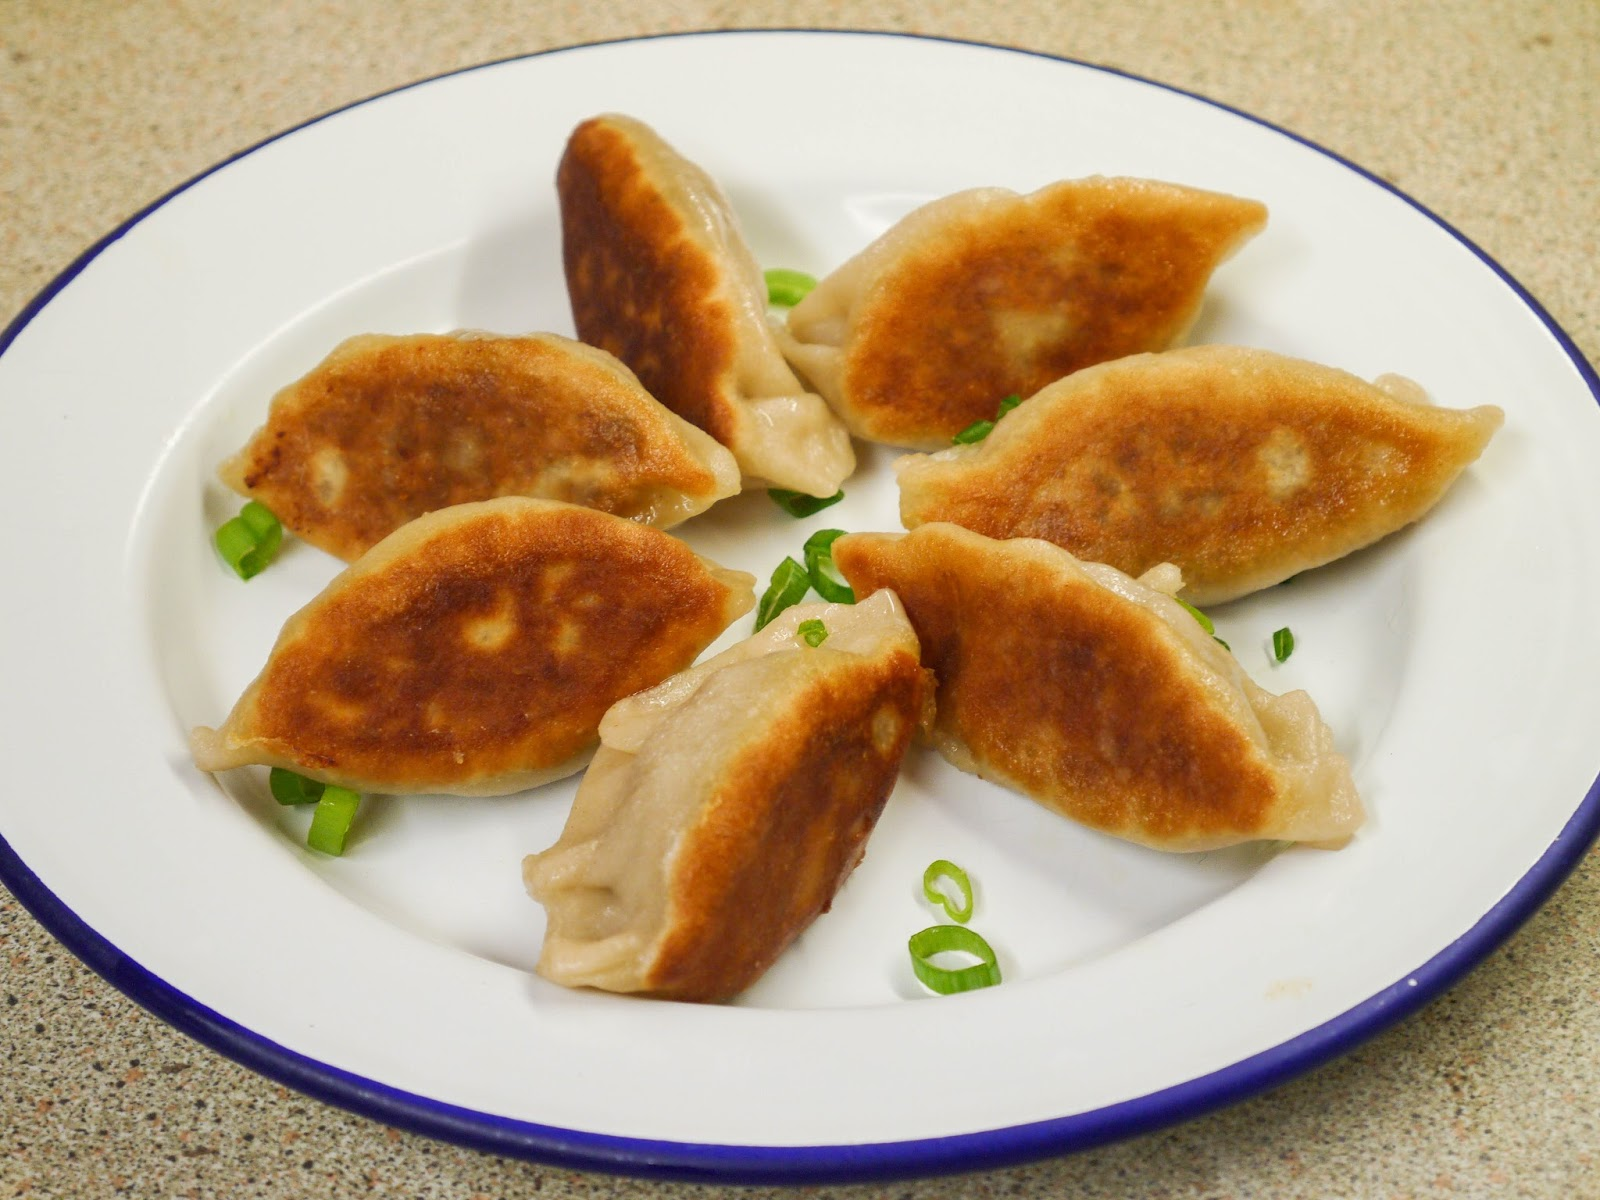 This muslim girl bakes chinese chicken potsticker dumplings where i live halal chinese food isnt readily available and so i have to make do with making my own which usually involves a lot of recipe adjustments to forumfinder Image collections